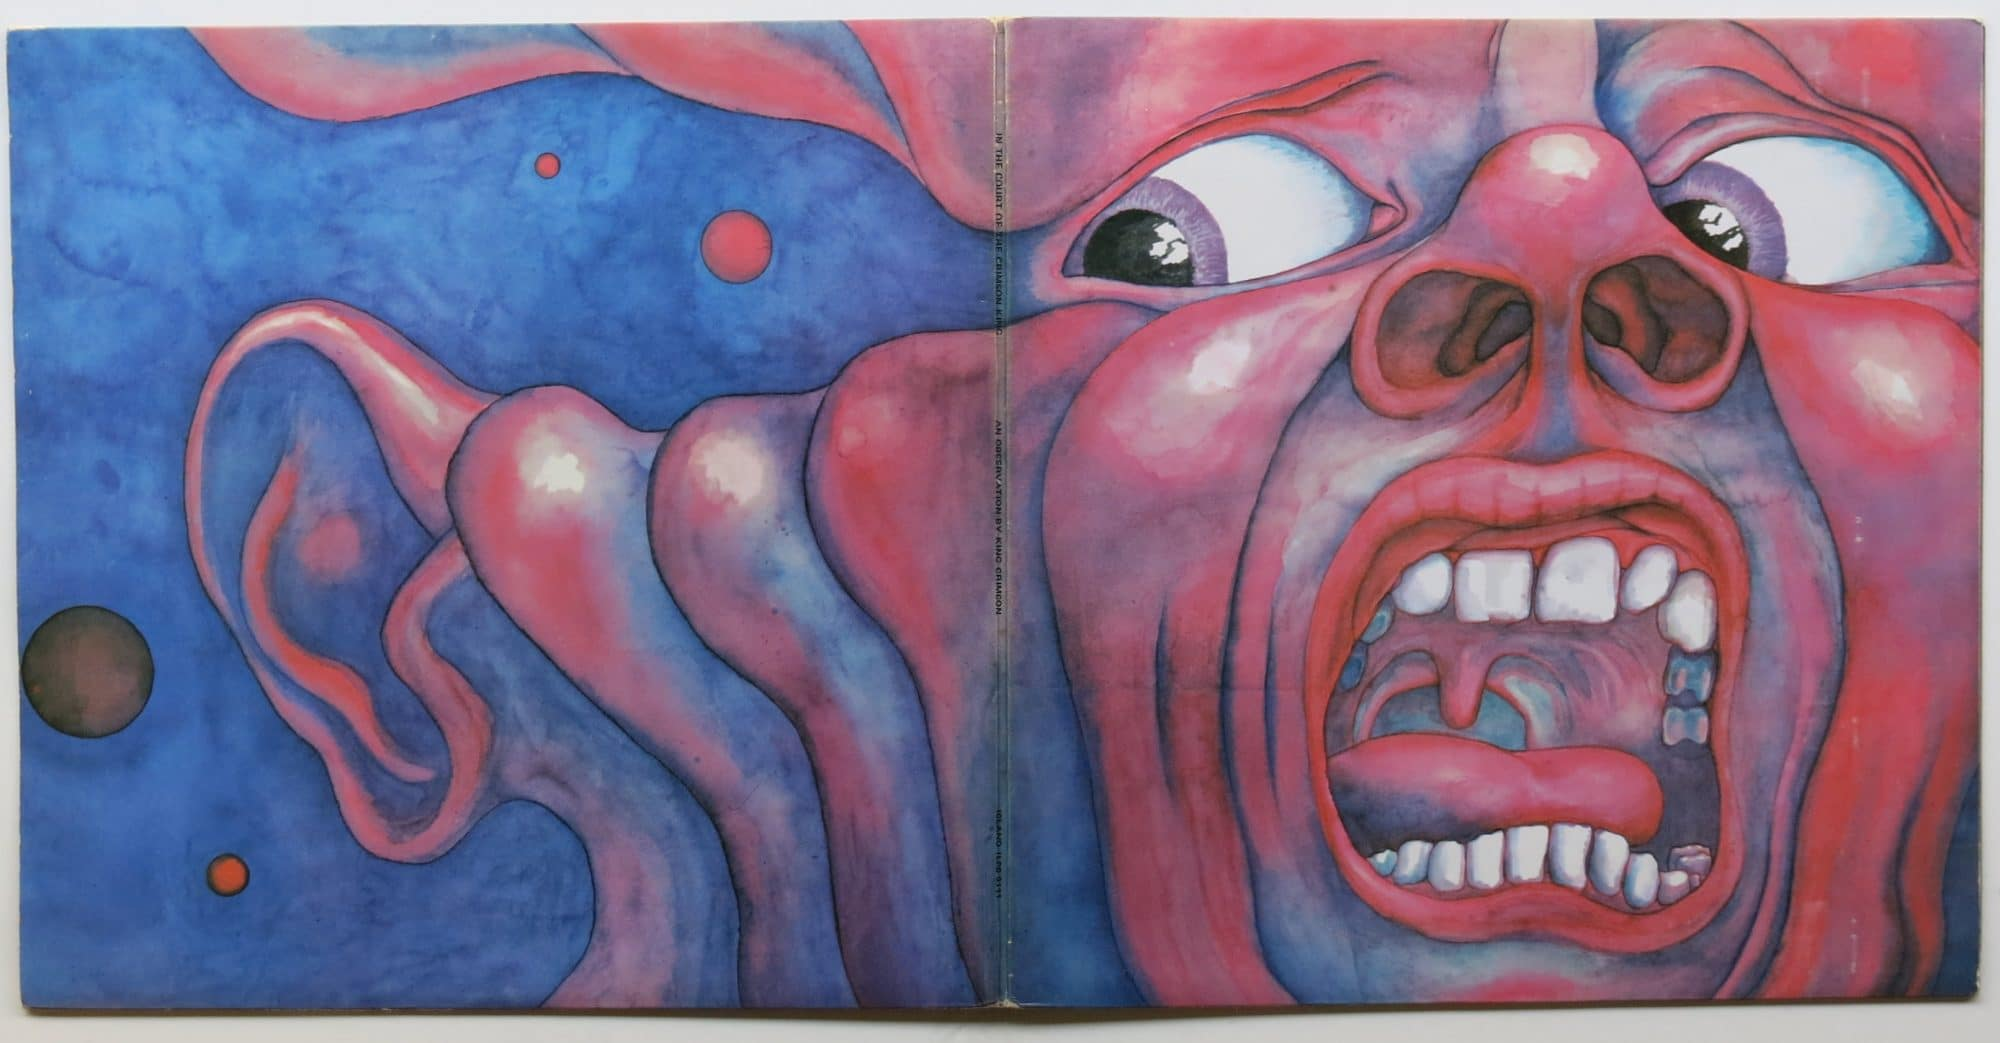 King Crimson album cover